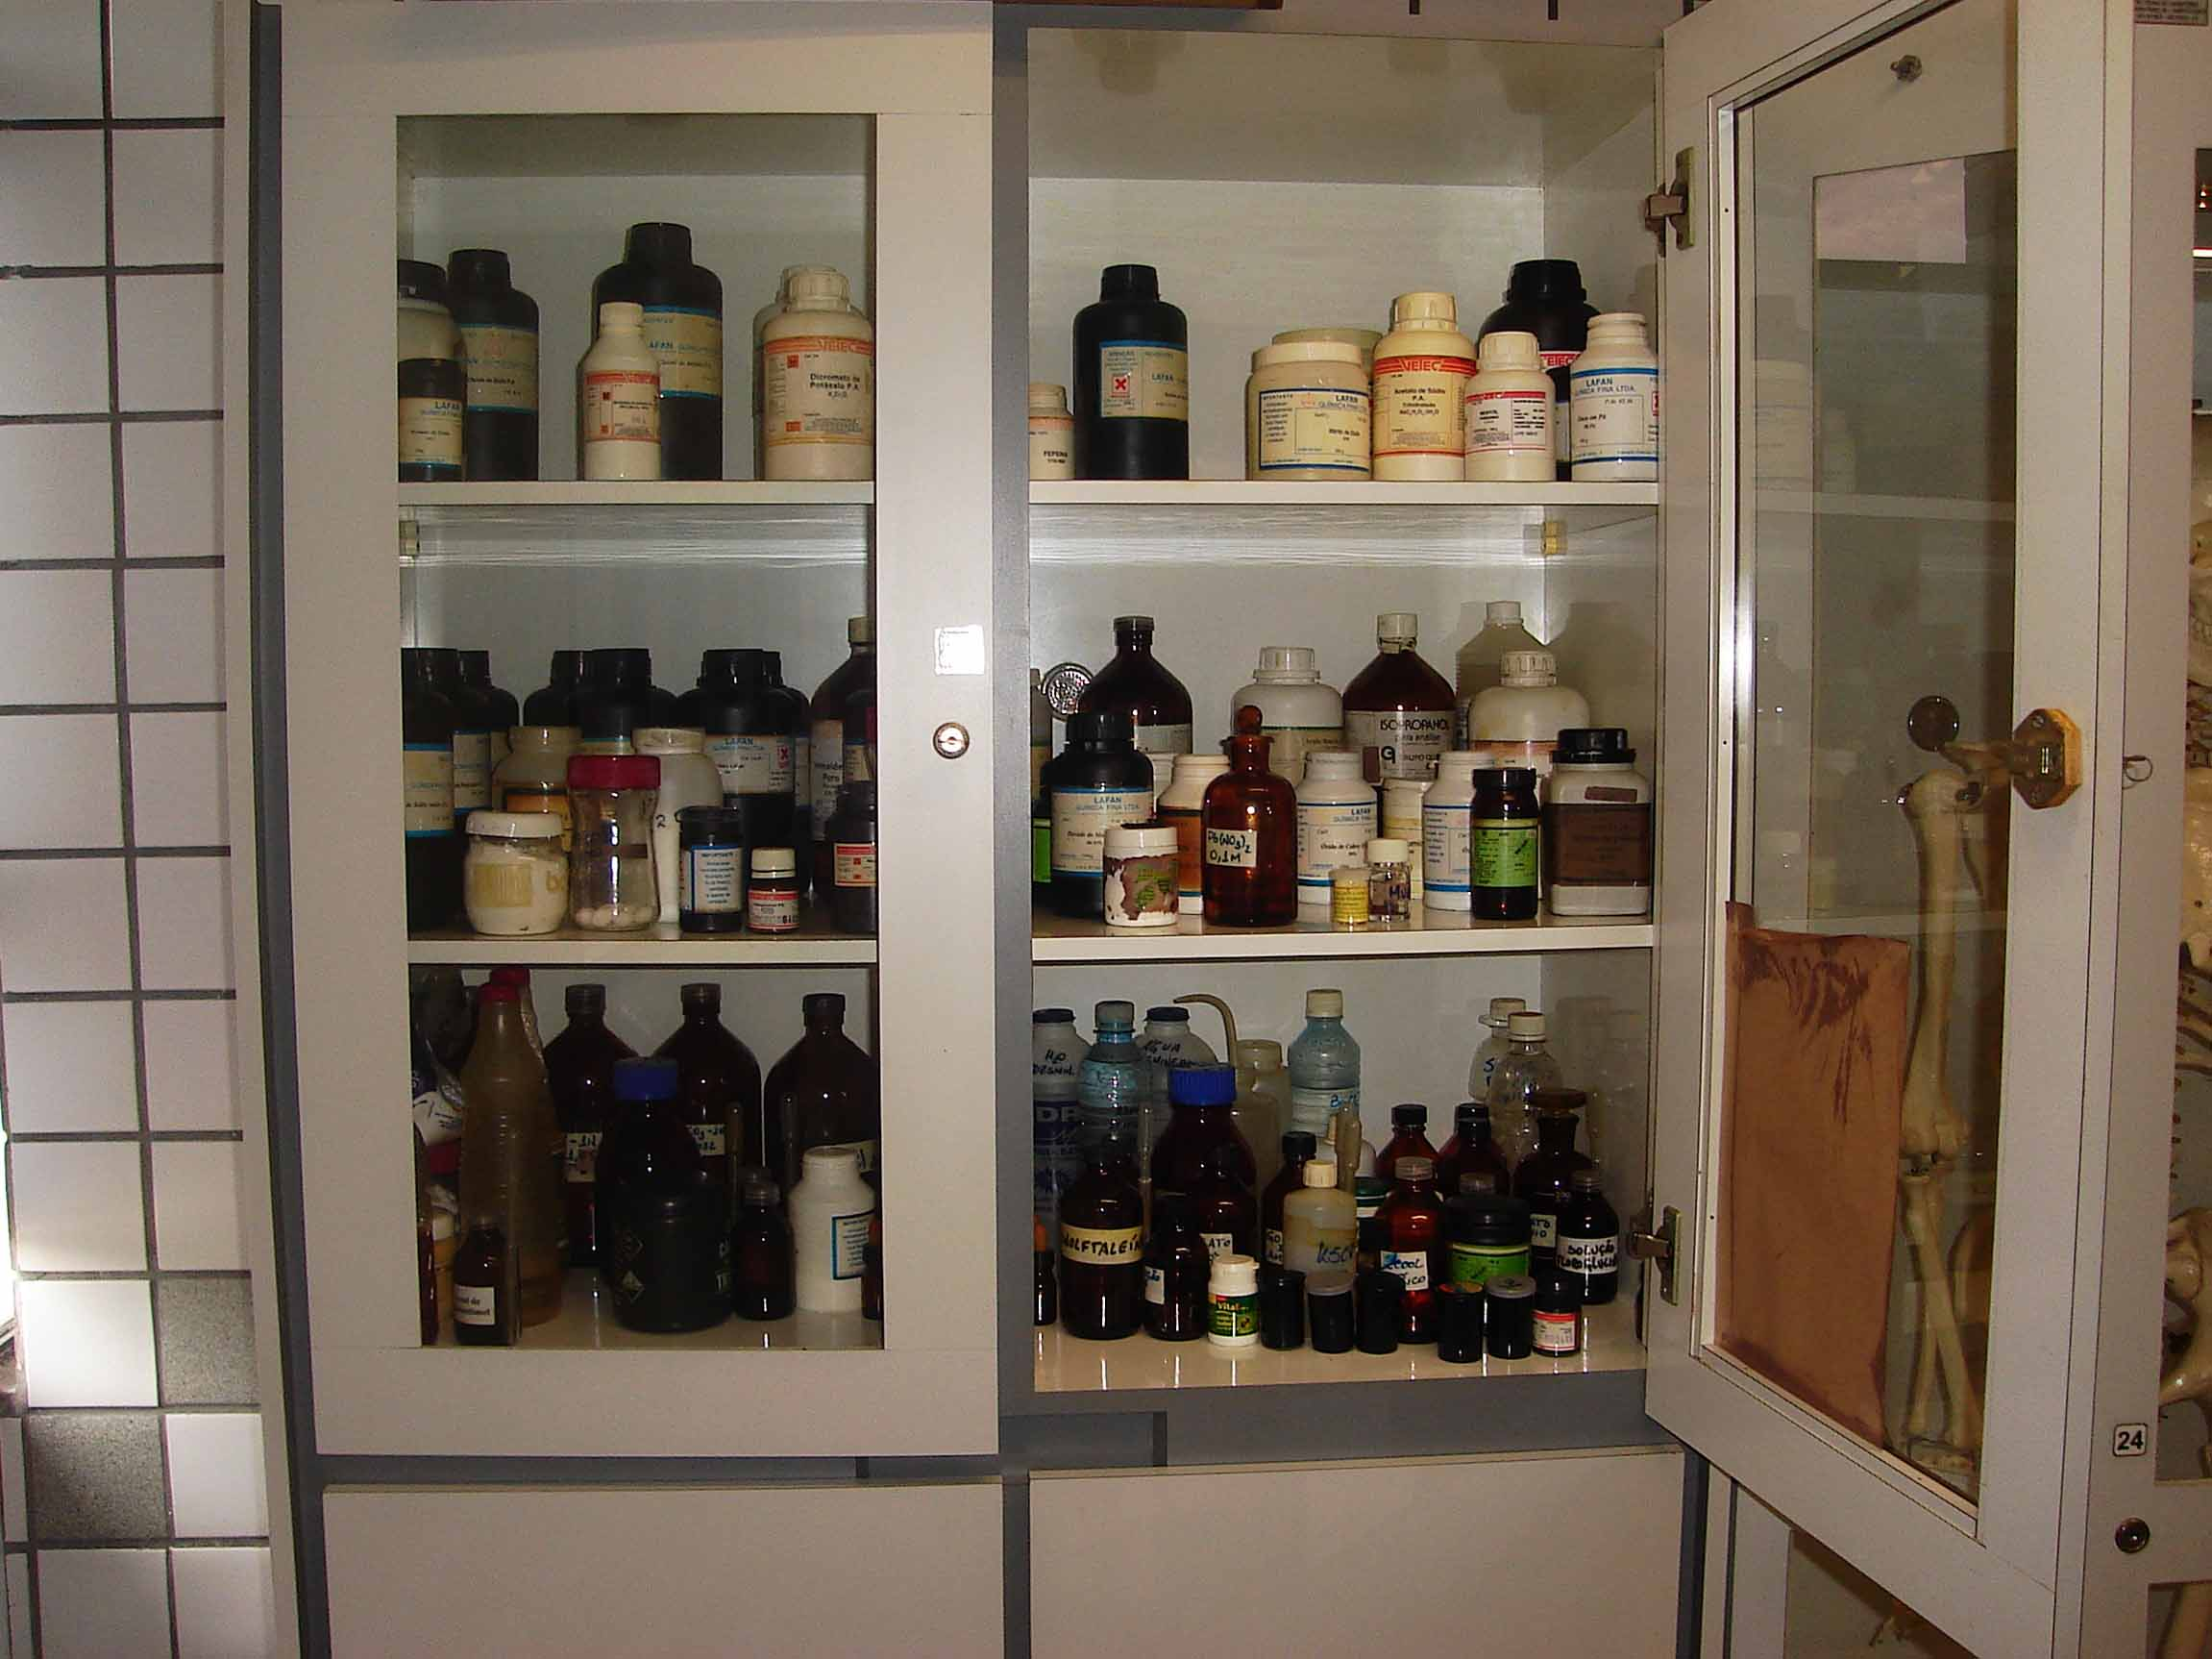 Chemicals in cabinet